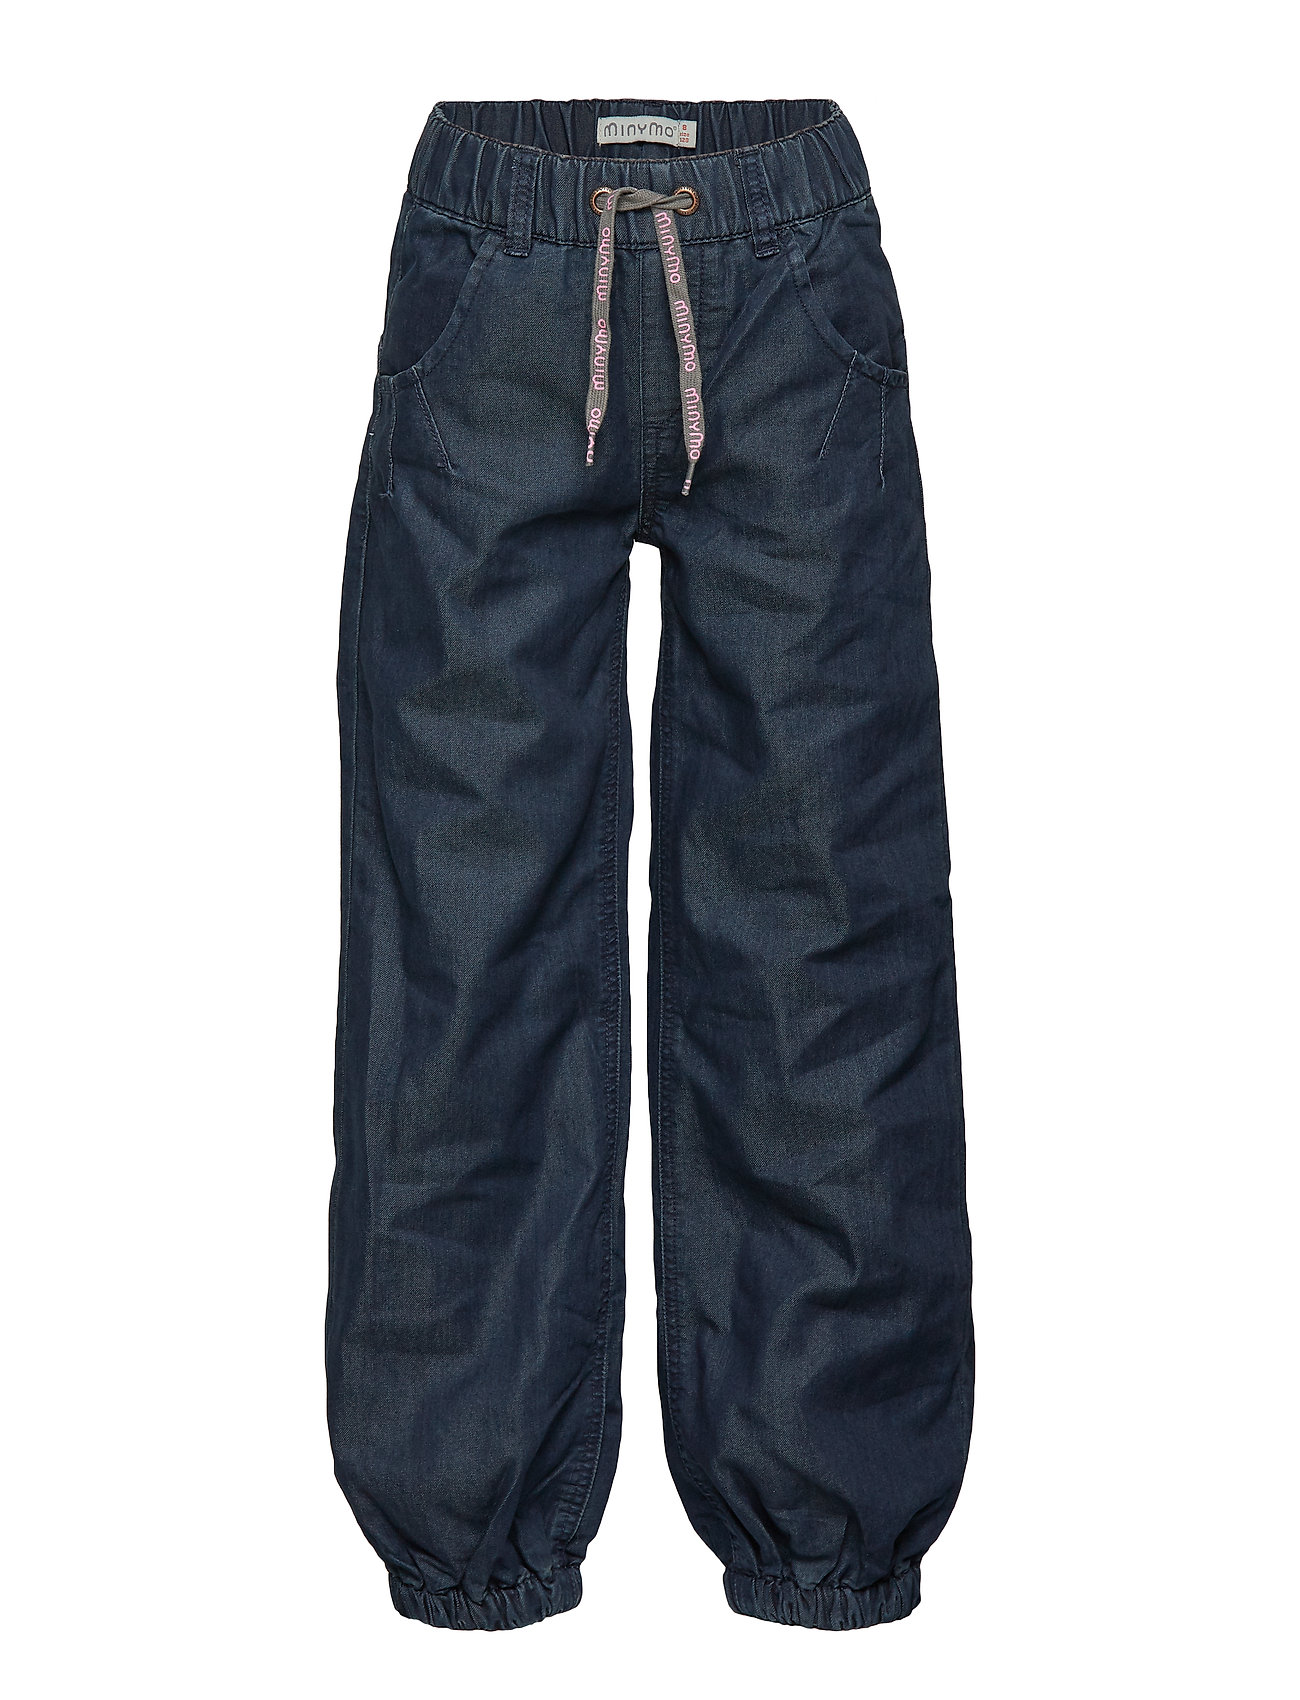 Minymo Baggy pant -GIRL - DARK BLUE